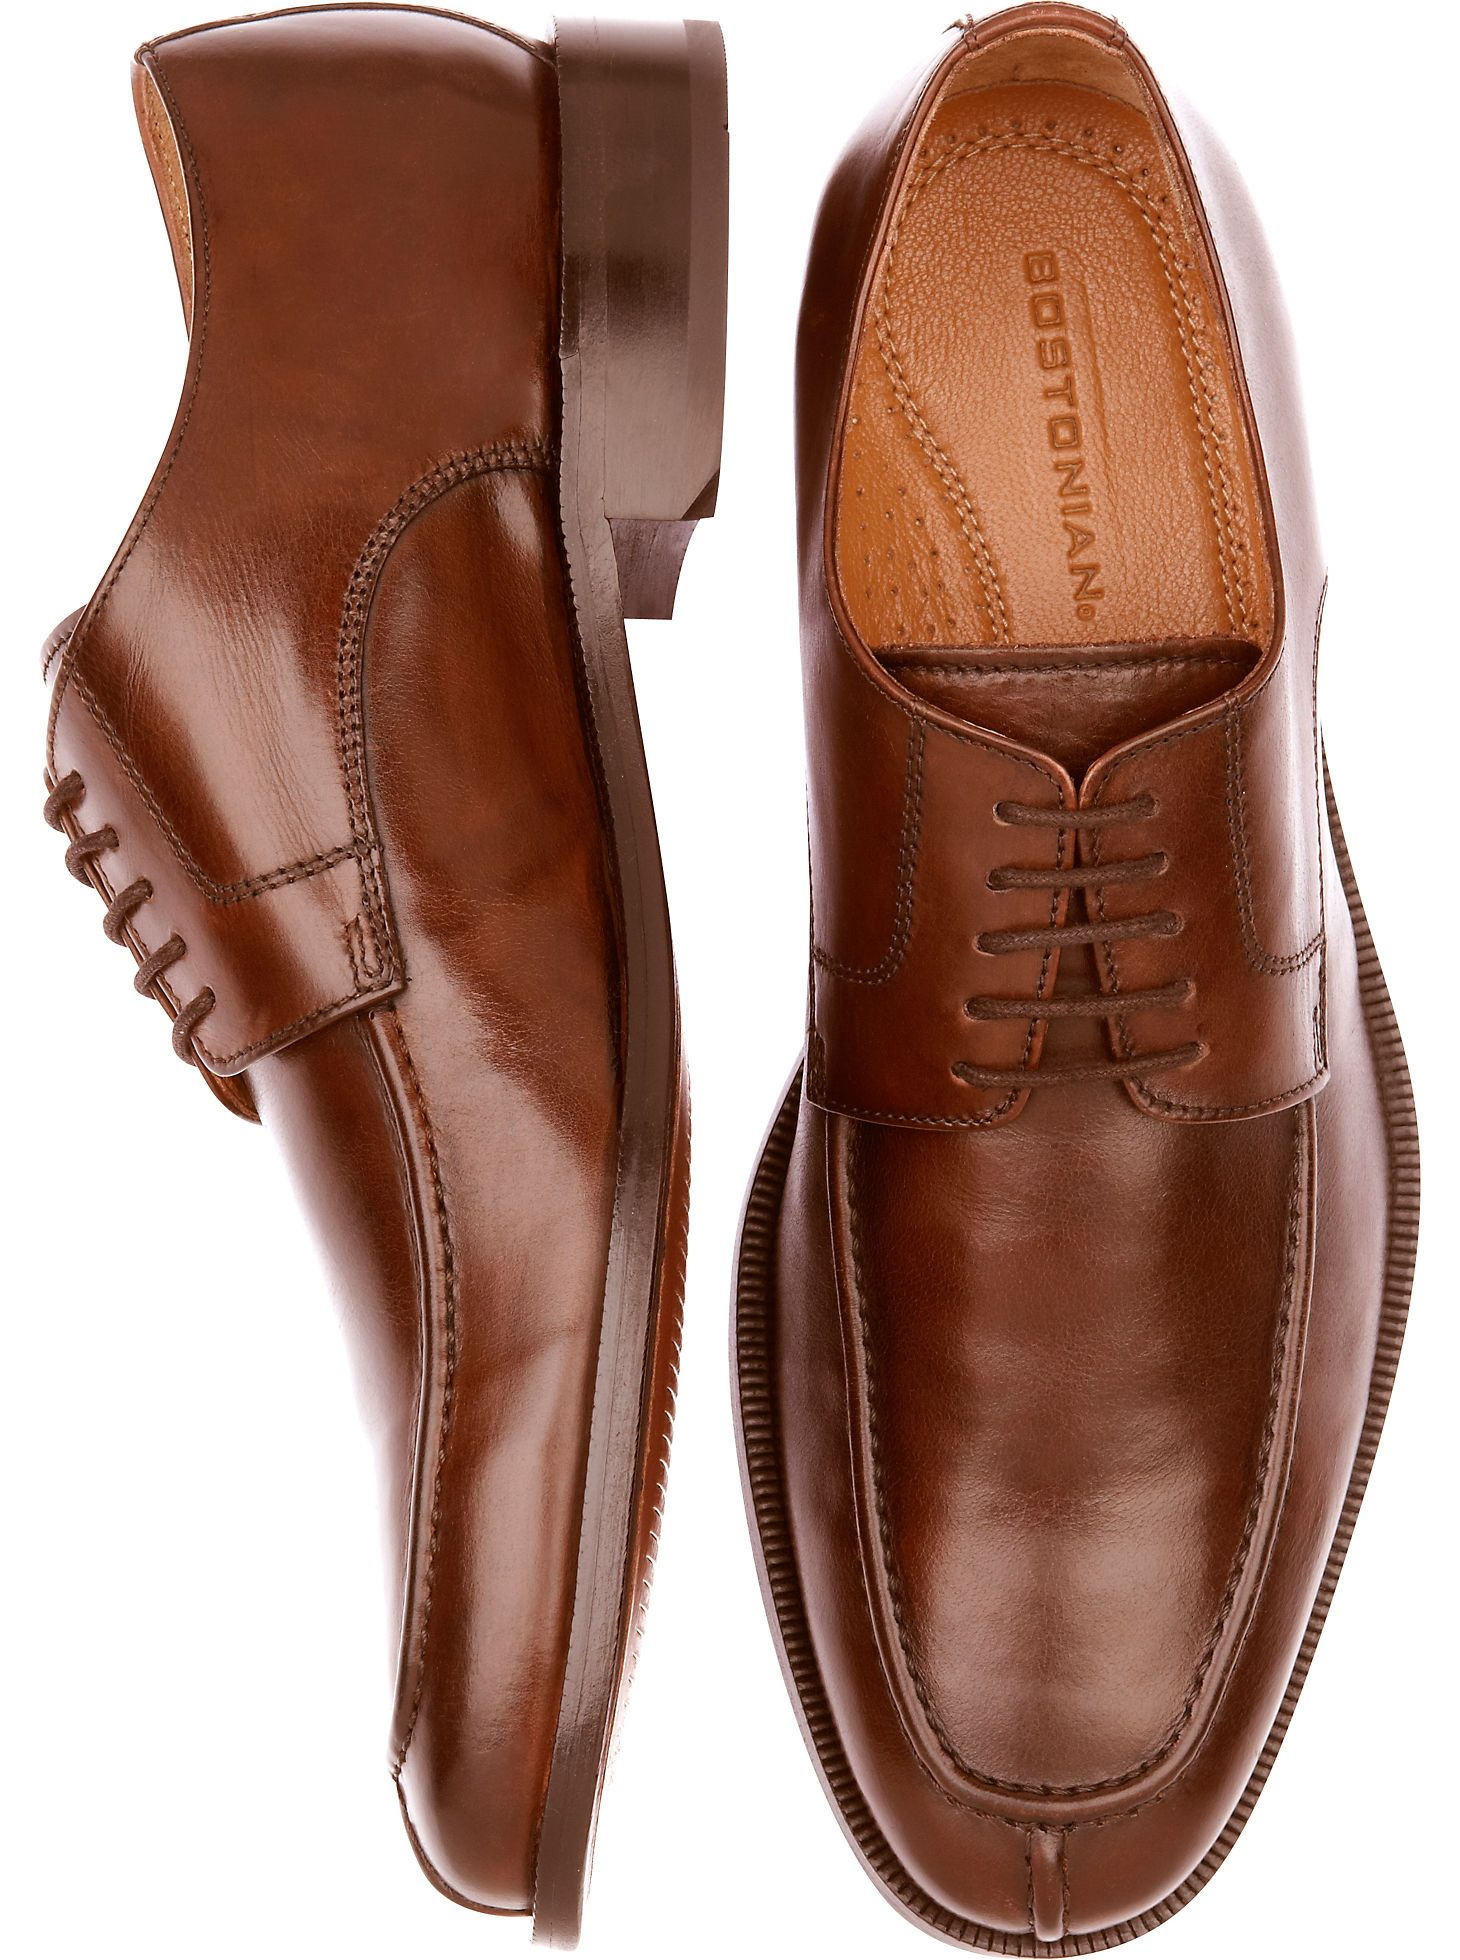 Shoes - Bostonian Algonquin Brown Blucher Dress Shoes - Mens Wearhouse